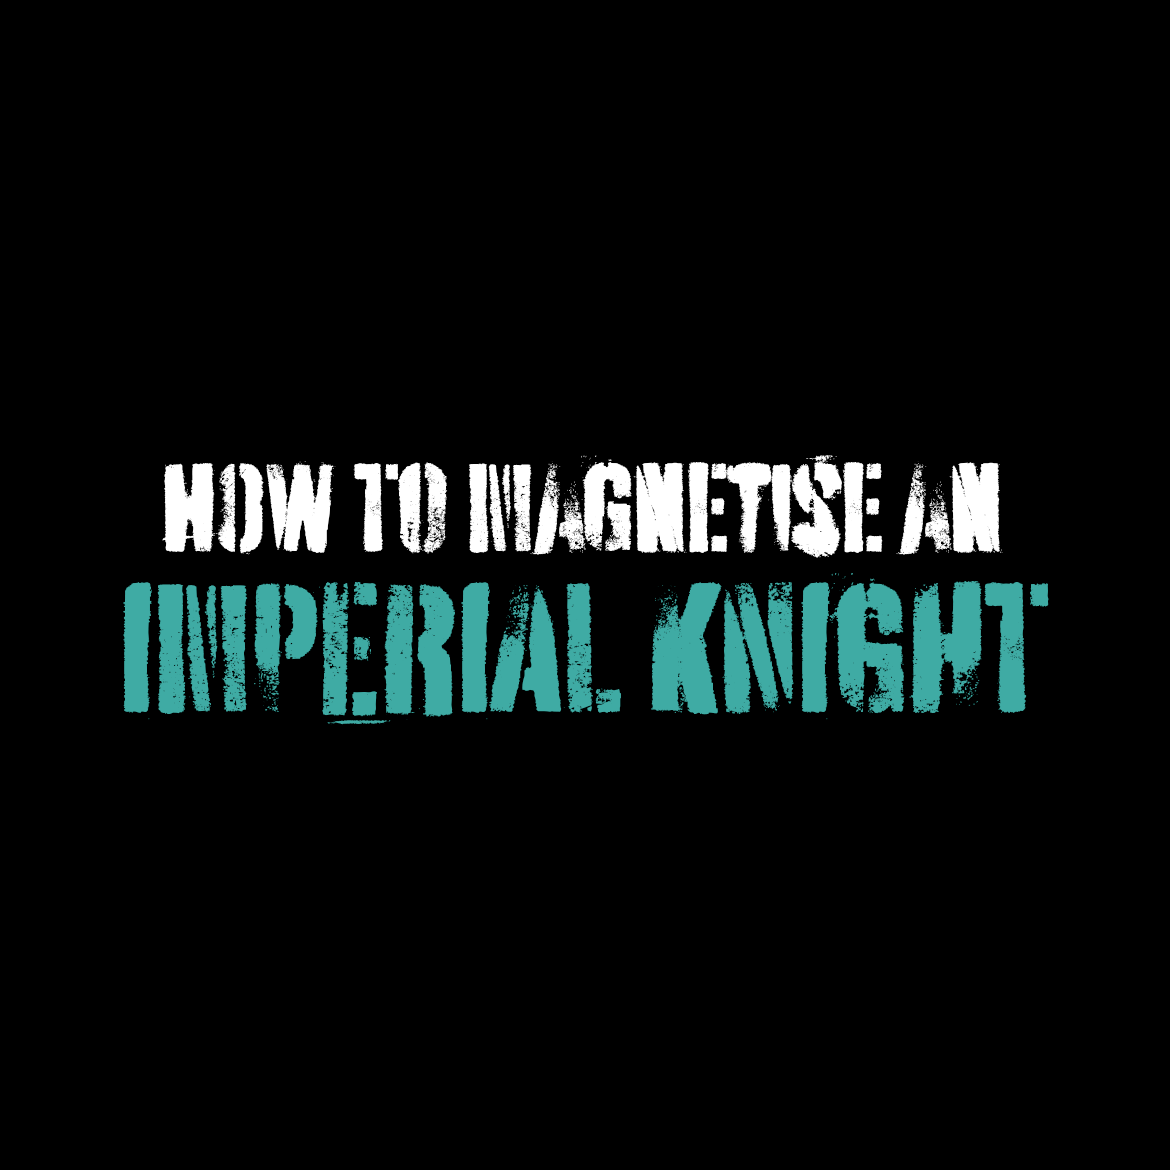 How to magnetise an Imperial Knight